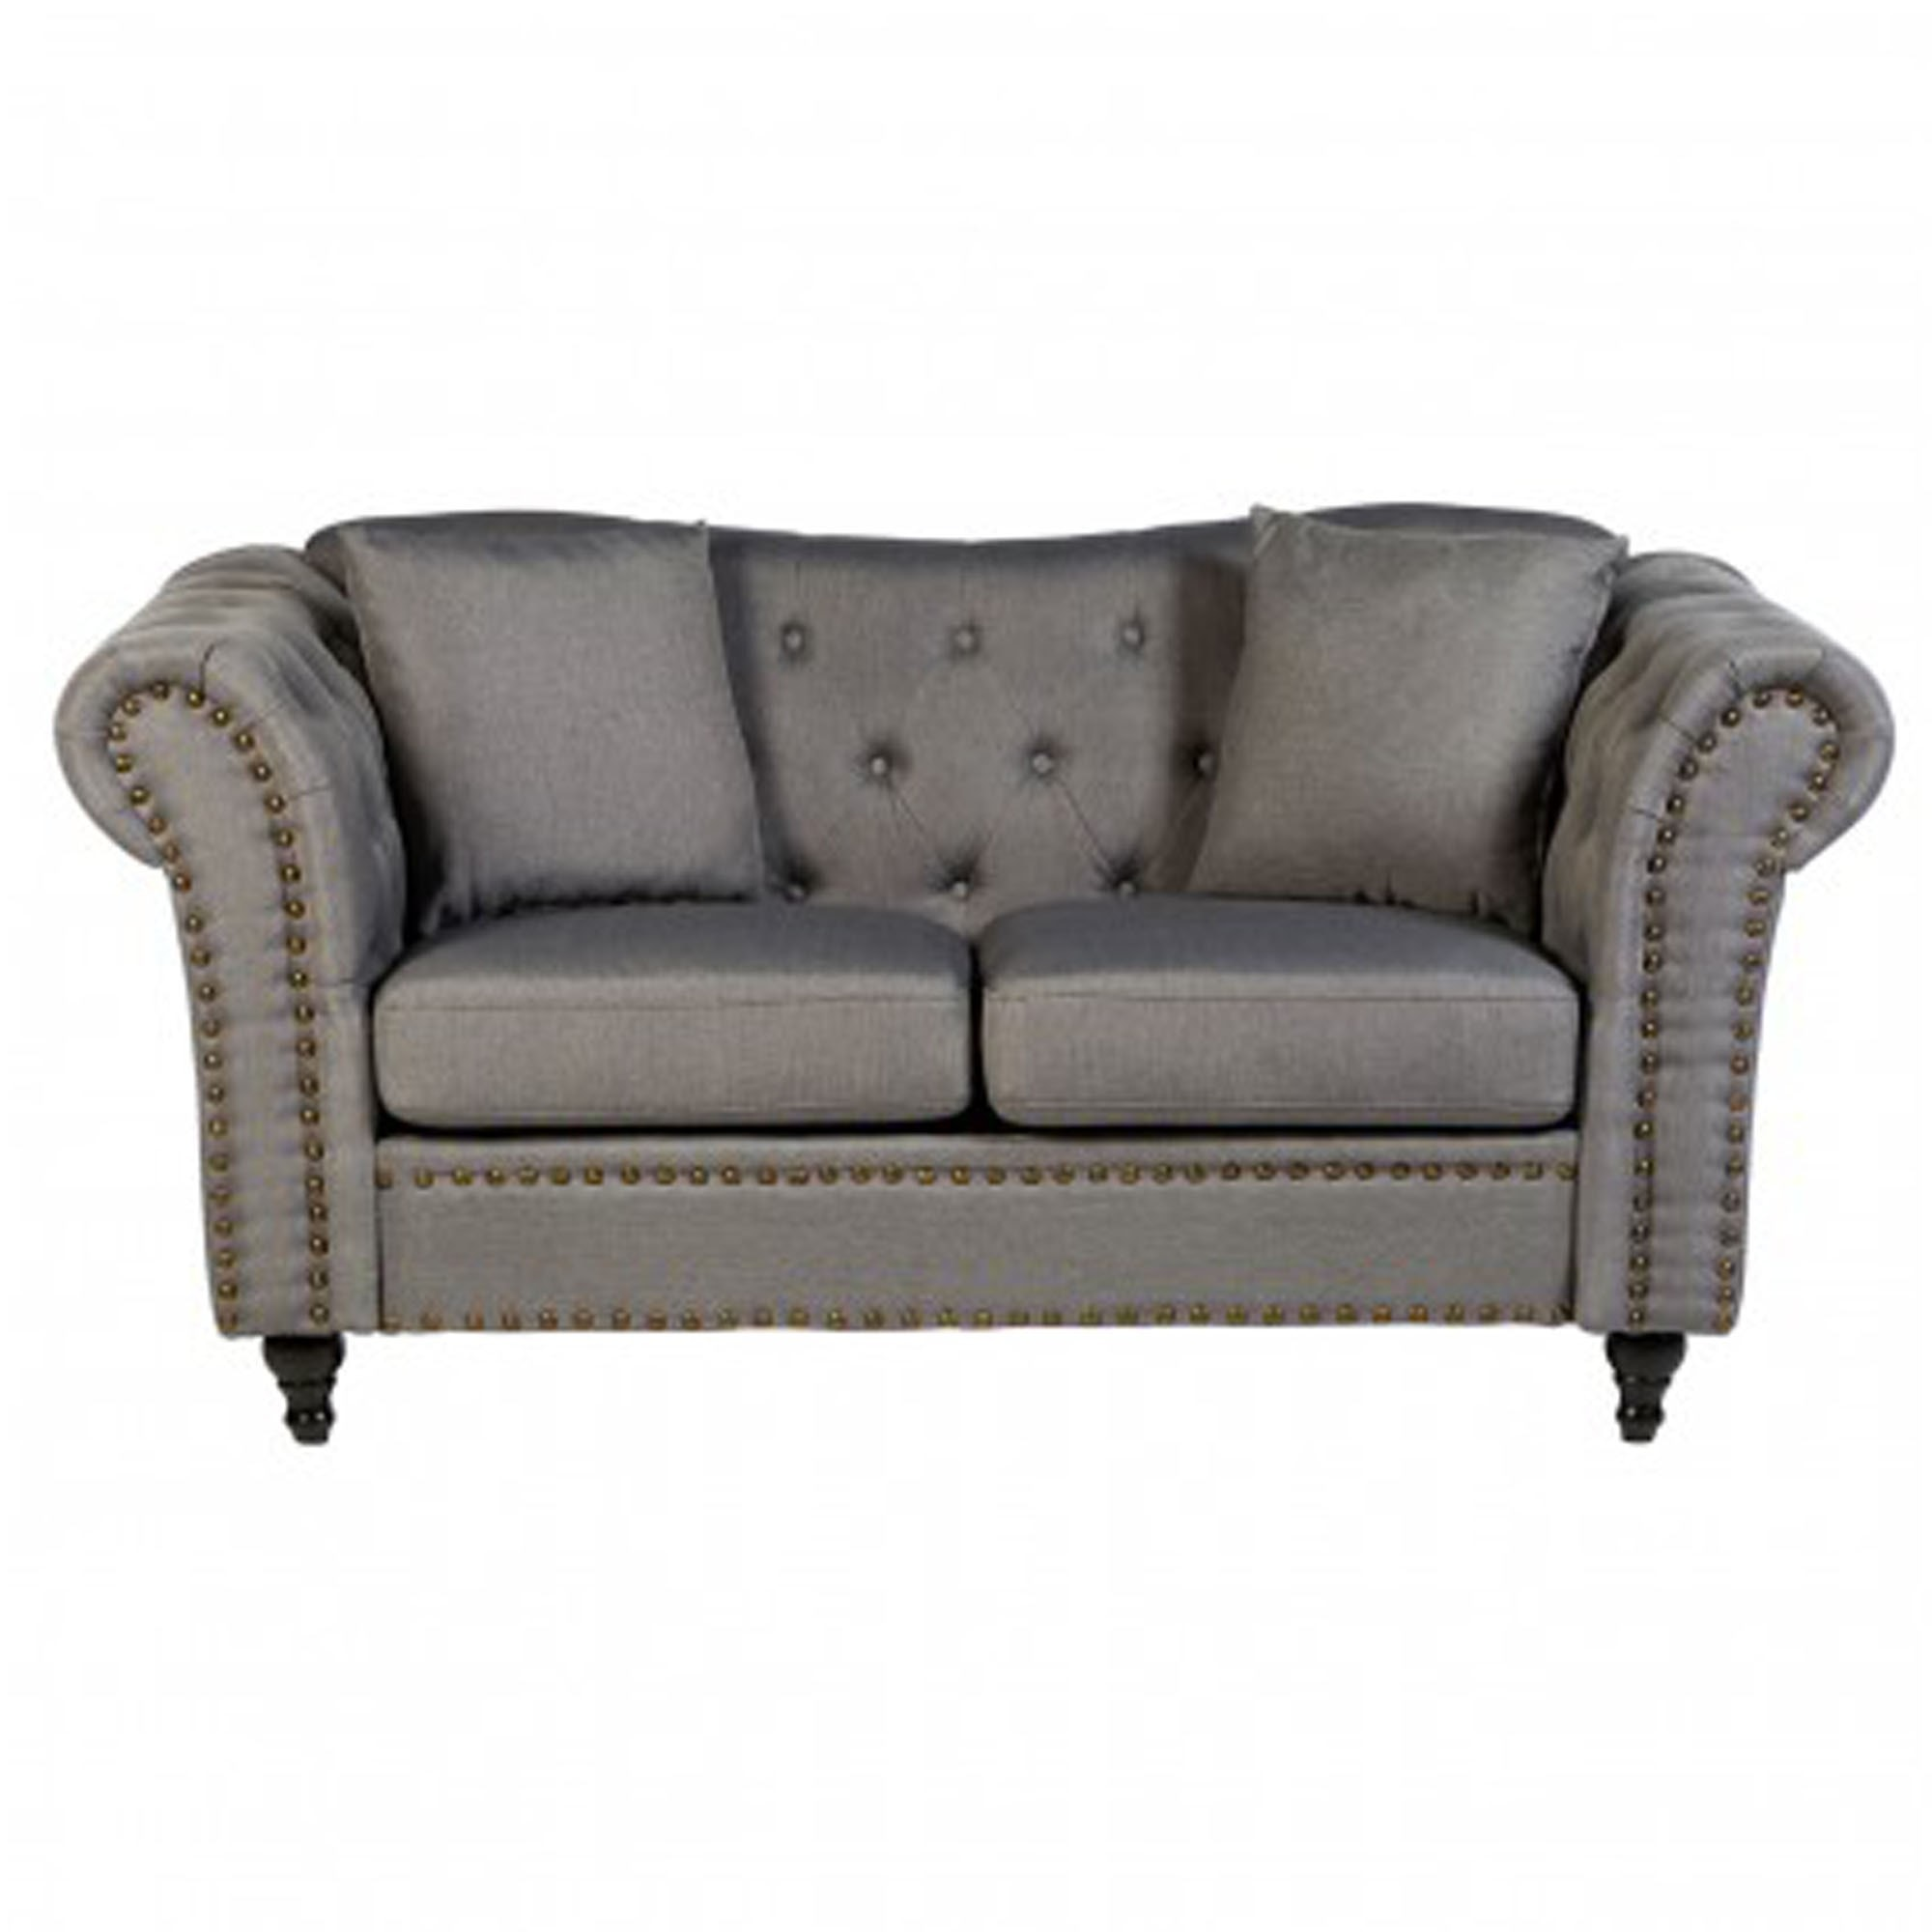 Fable 2 Seat Grey Chesterfield Sofa